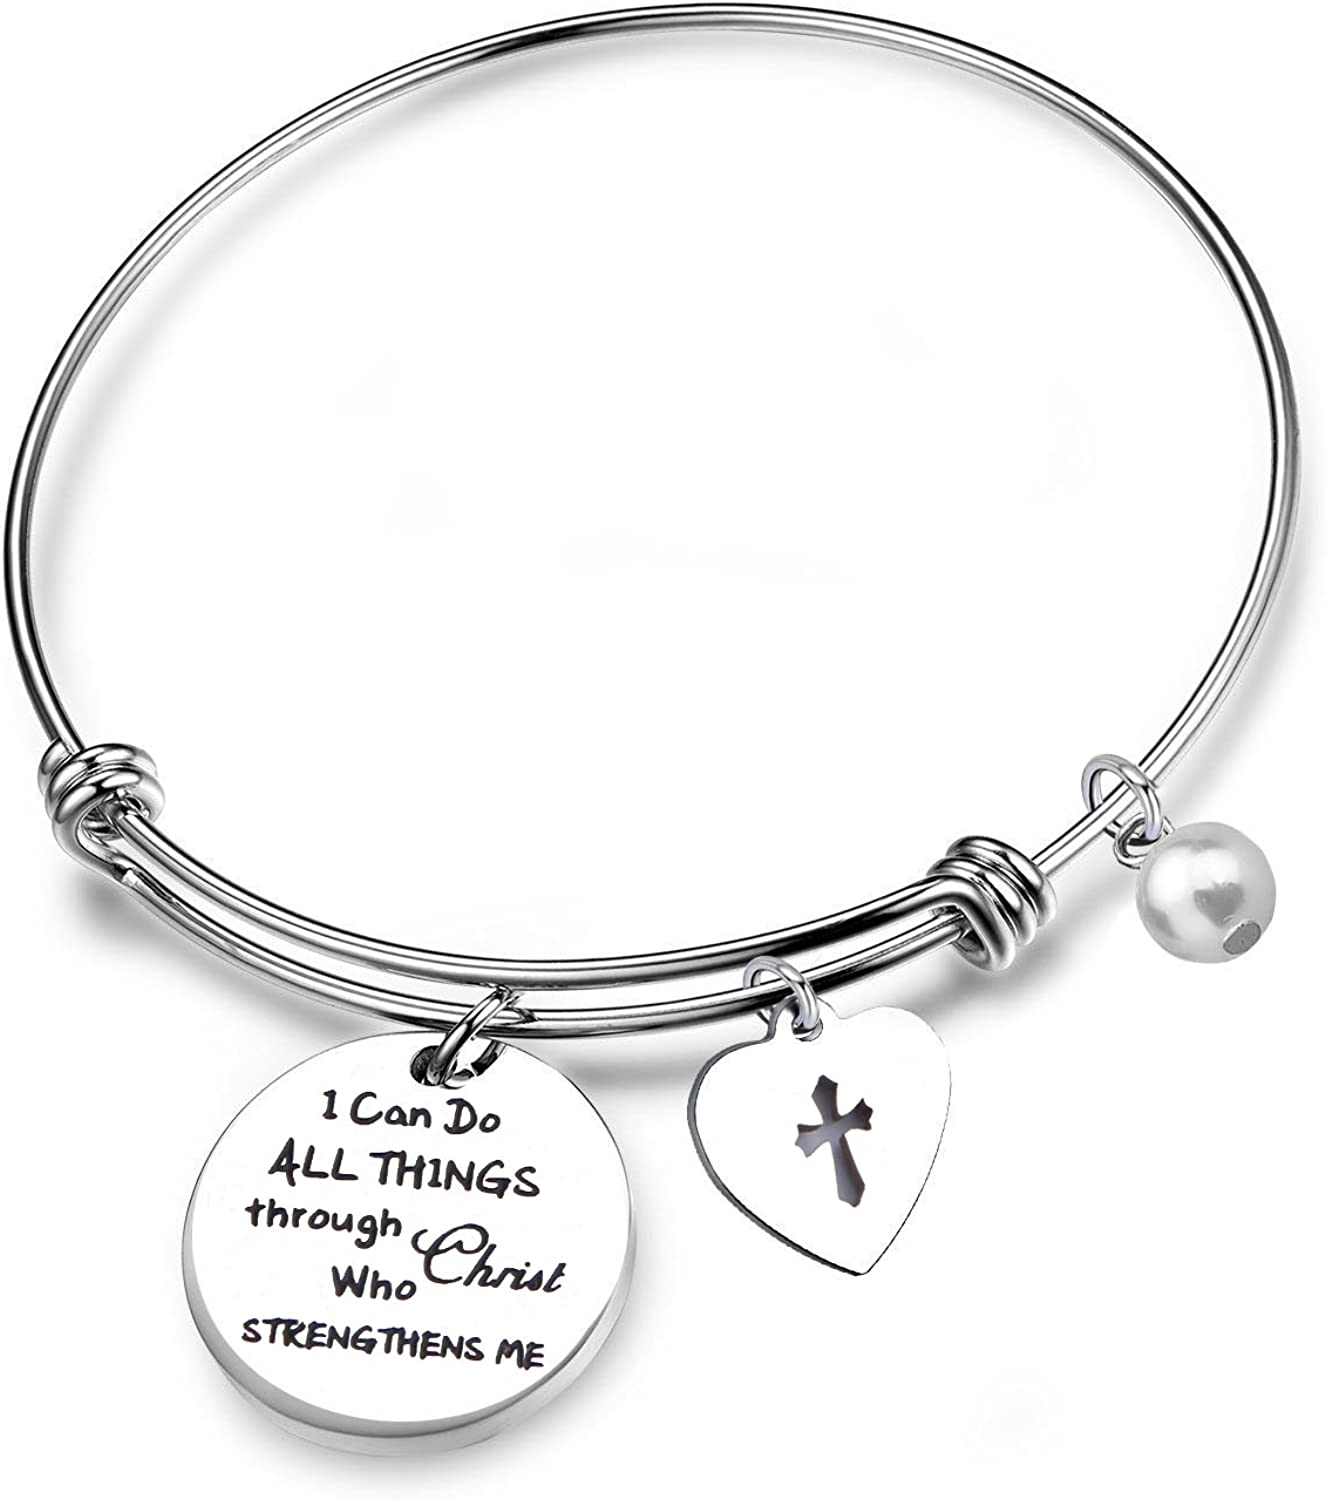 RQIER Philippians 4:13 Bracelet Strength Bible Verse Expandable Wire Bangle Christian Jewelry Religious Jewelry Inspirational Gift